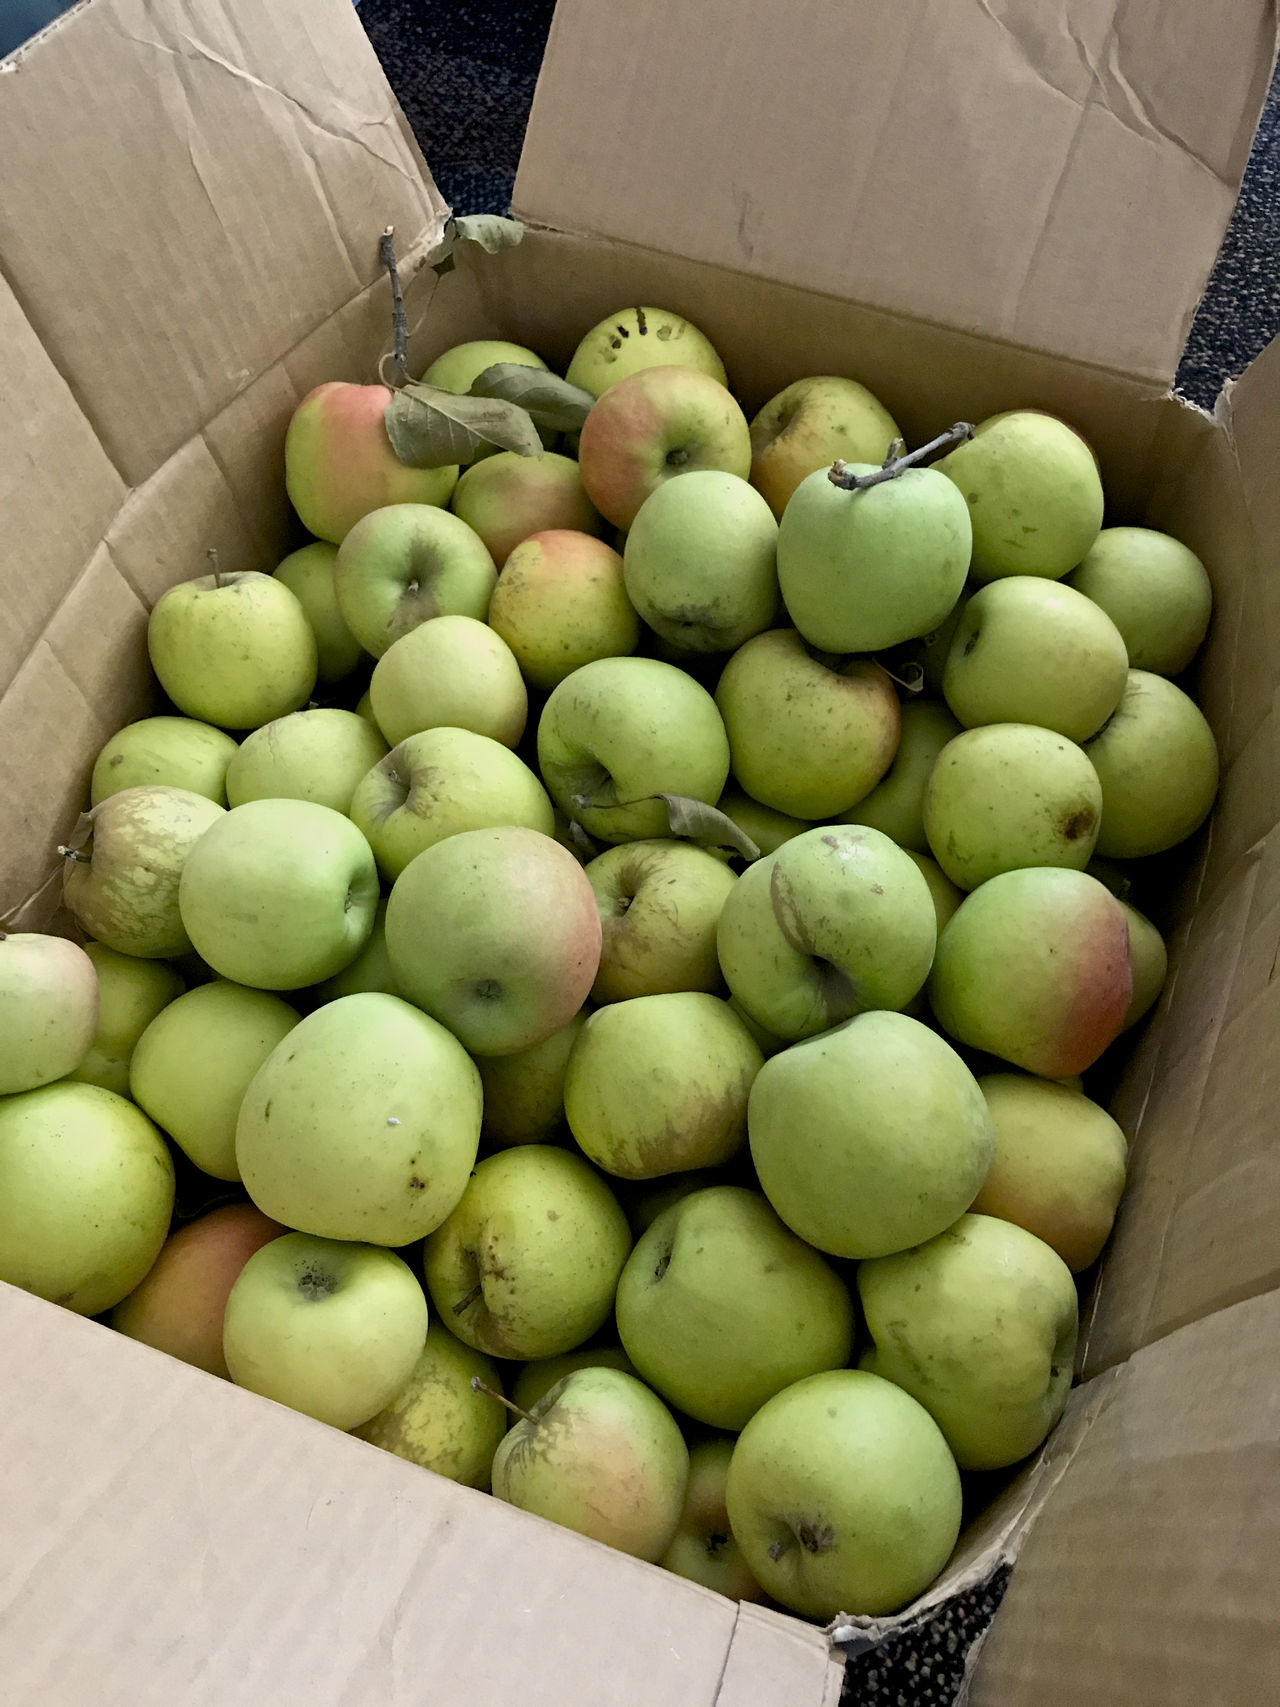 Apple Apples Box Of Apples Cardboard Box Food Food And Drink Freshness Fruit Green Apples  Green Color Healthy Eating High Angle View